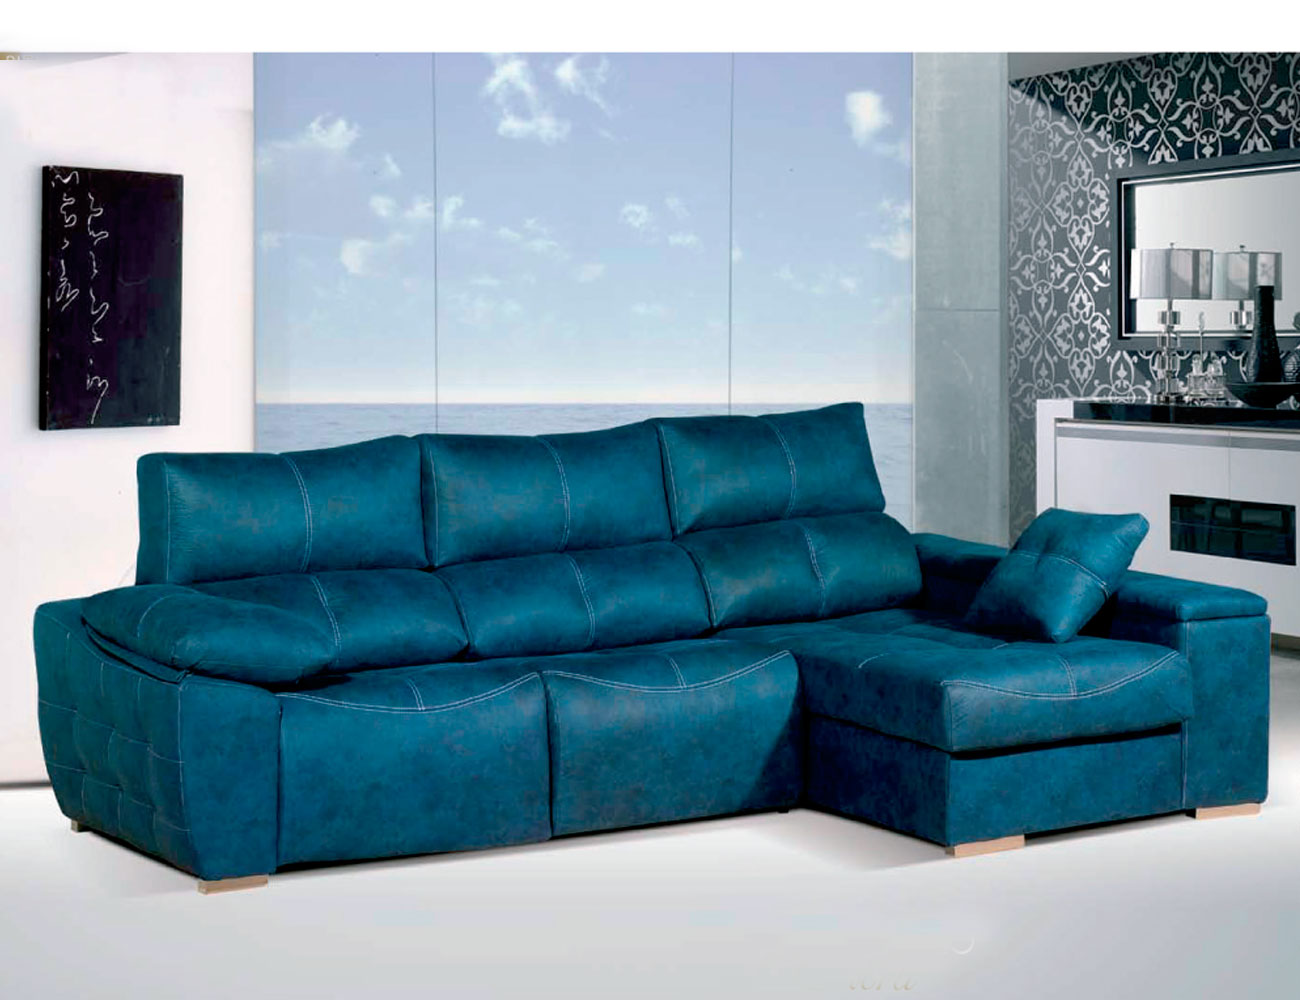 Sofa chaiselongue relax 2 motores anti manchas turquesa41